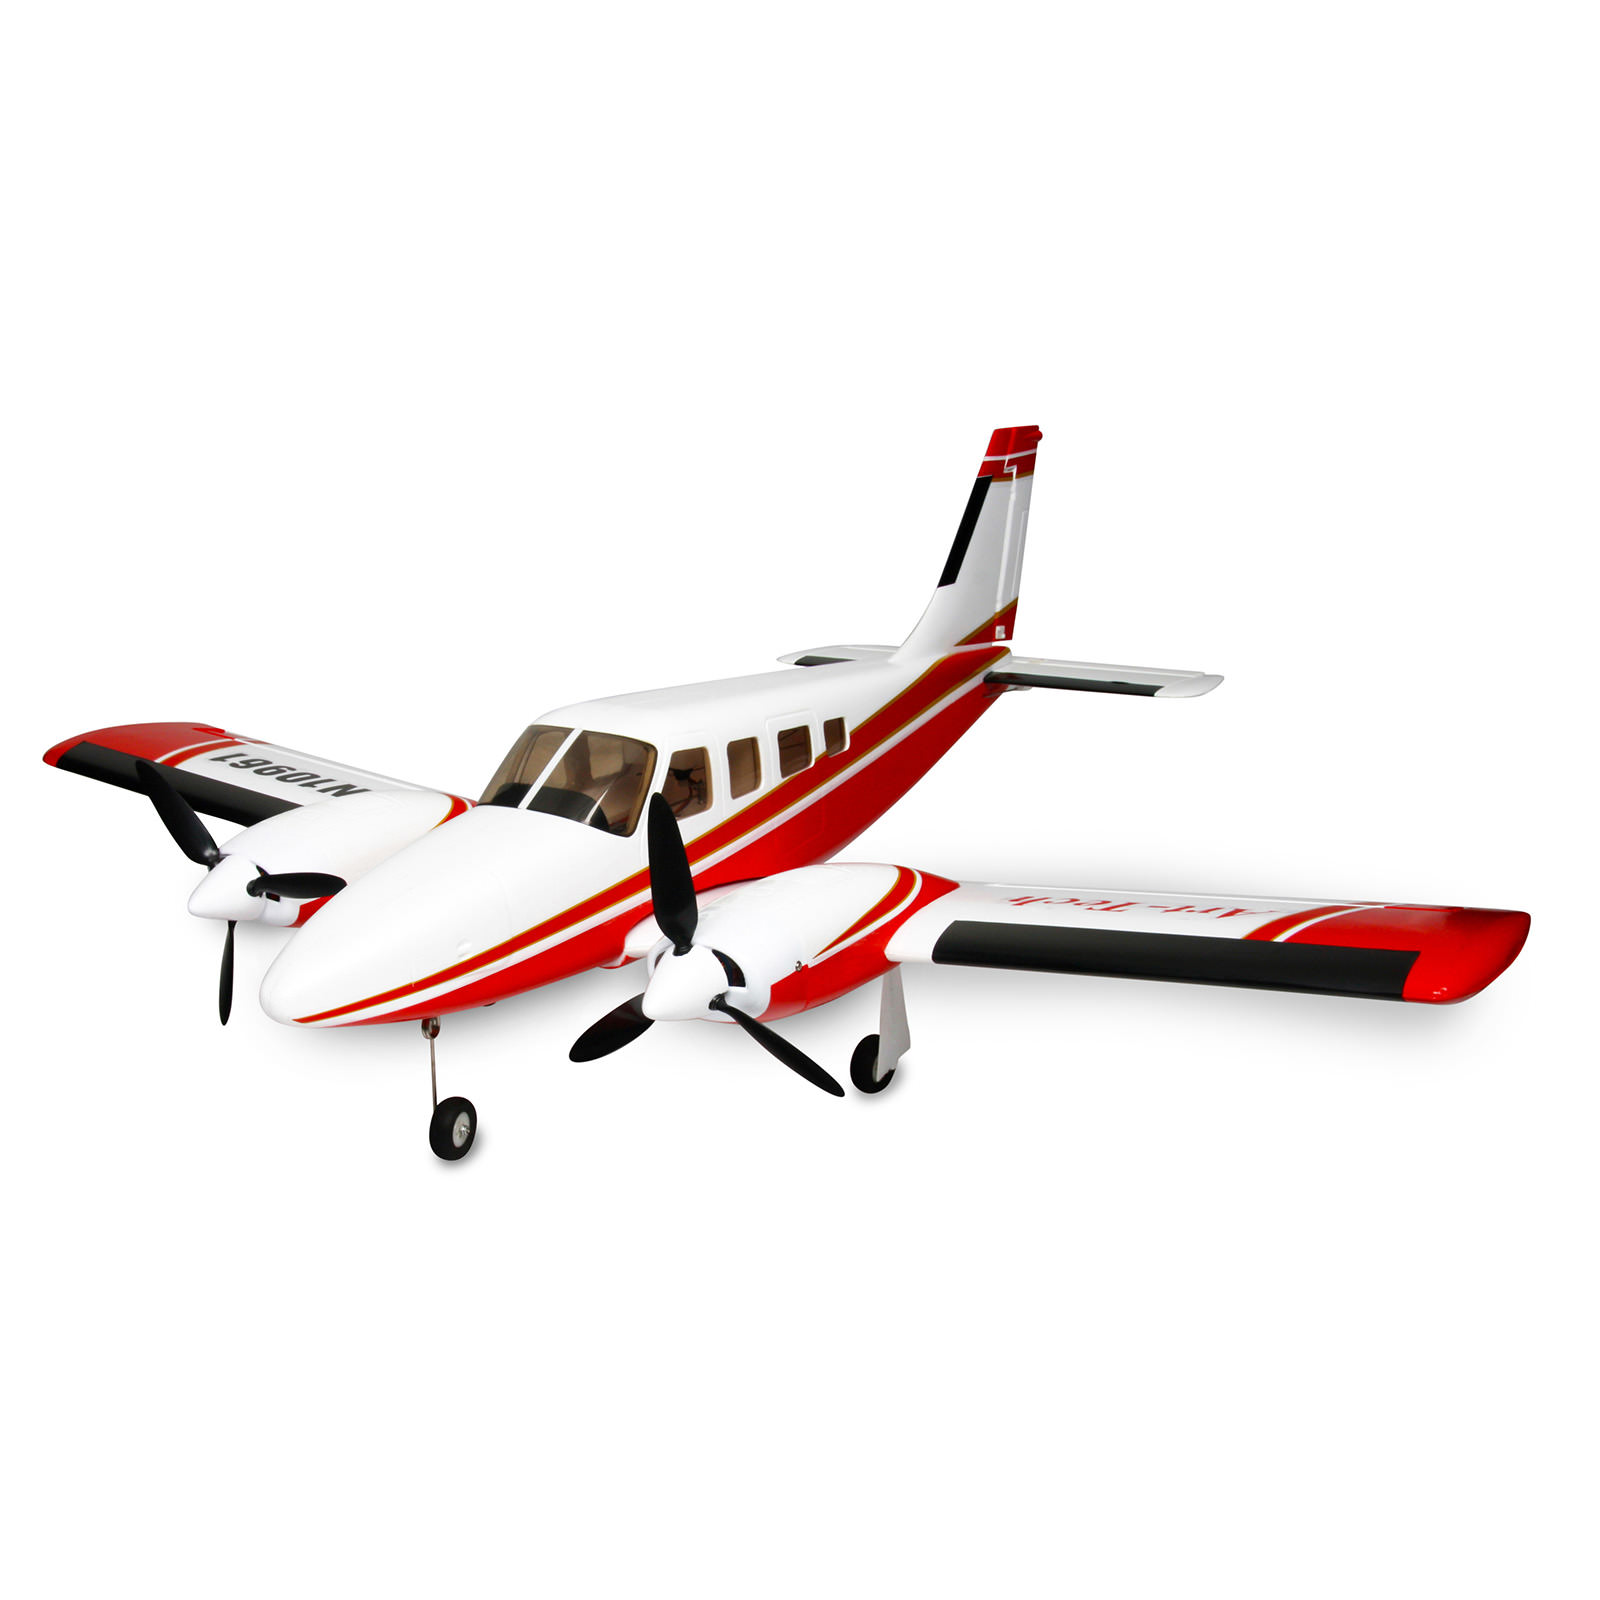 electric rc plane kits with Art Tech 21811 Piper P34 Rc Plane on 391414748846 in addition Balsa Wood Glider Kits likewise Showthread furthermore Underwater ROV moreover 5782.